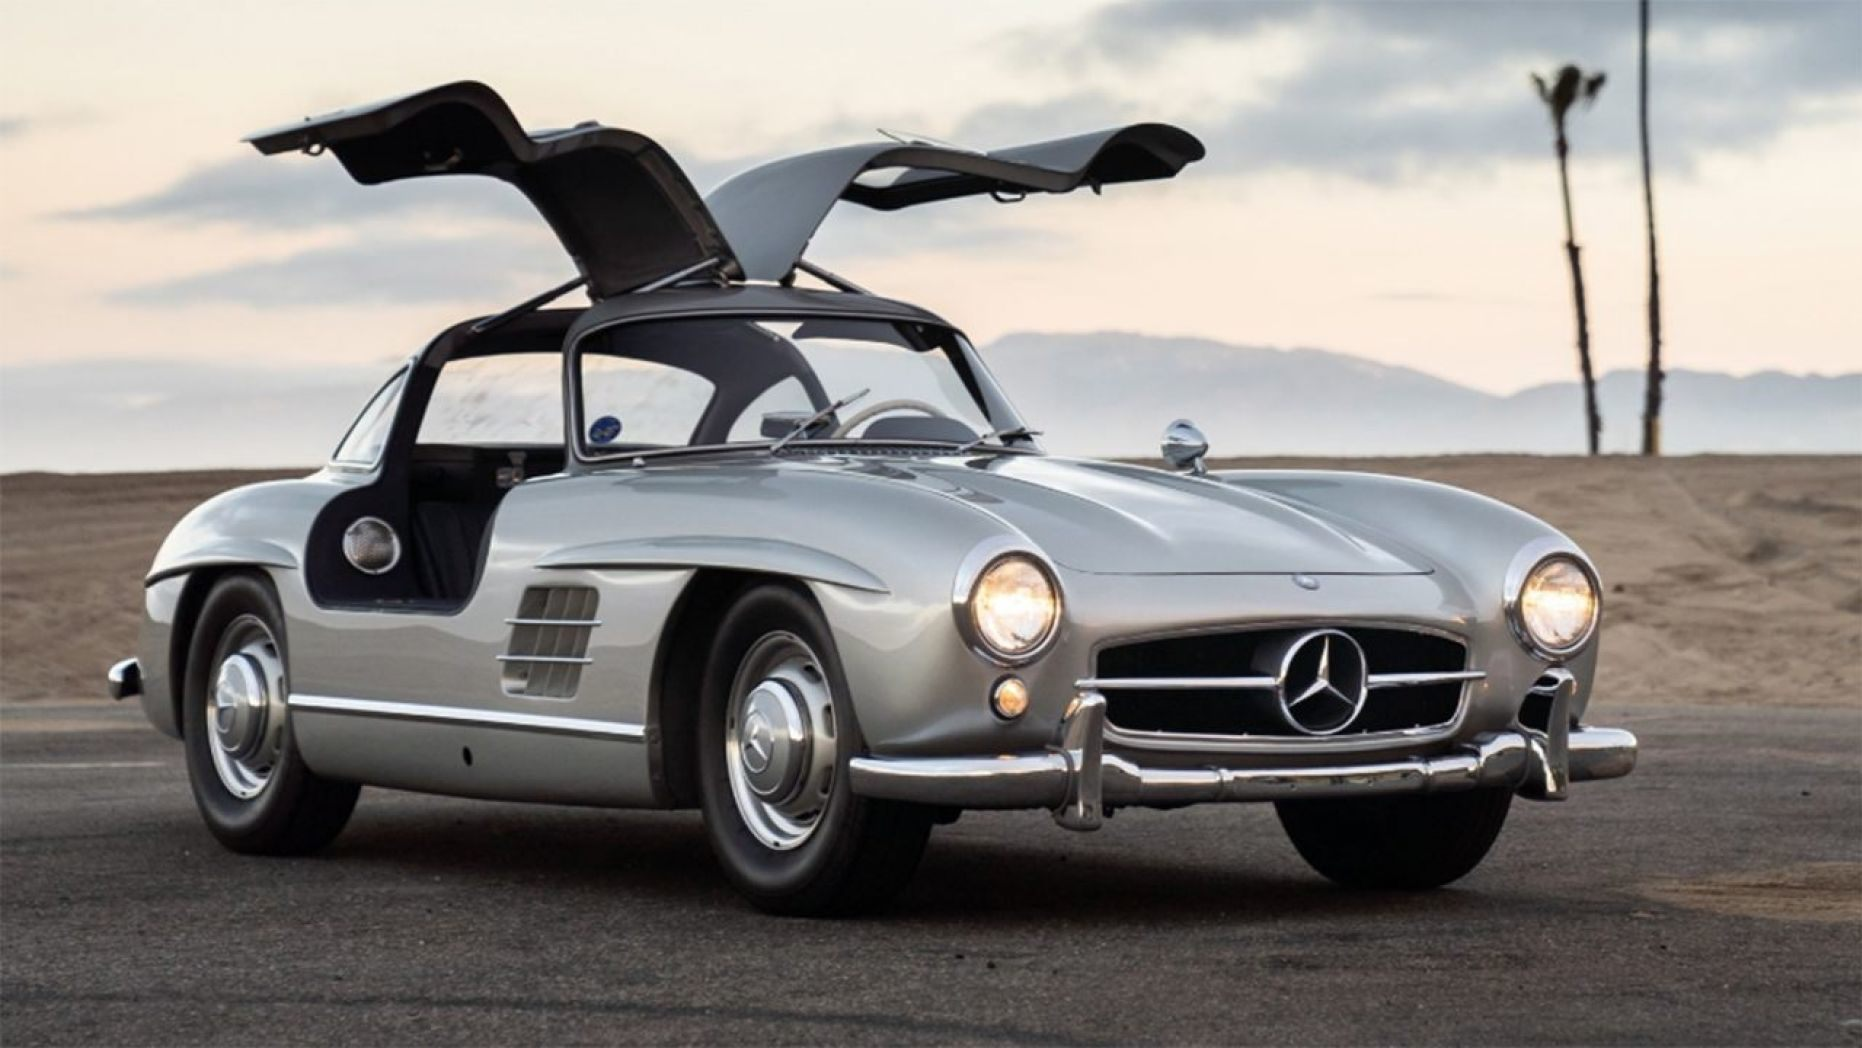 Adam Levine 1955 Mercedes-Benz 300 SL Gullwing